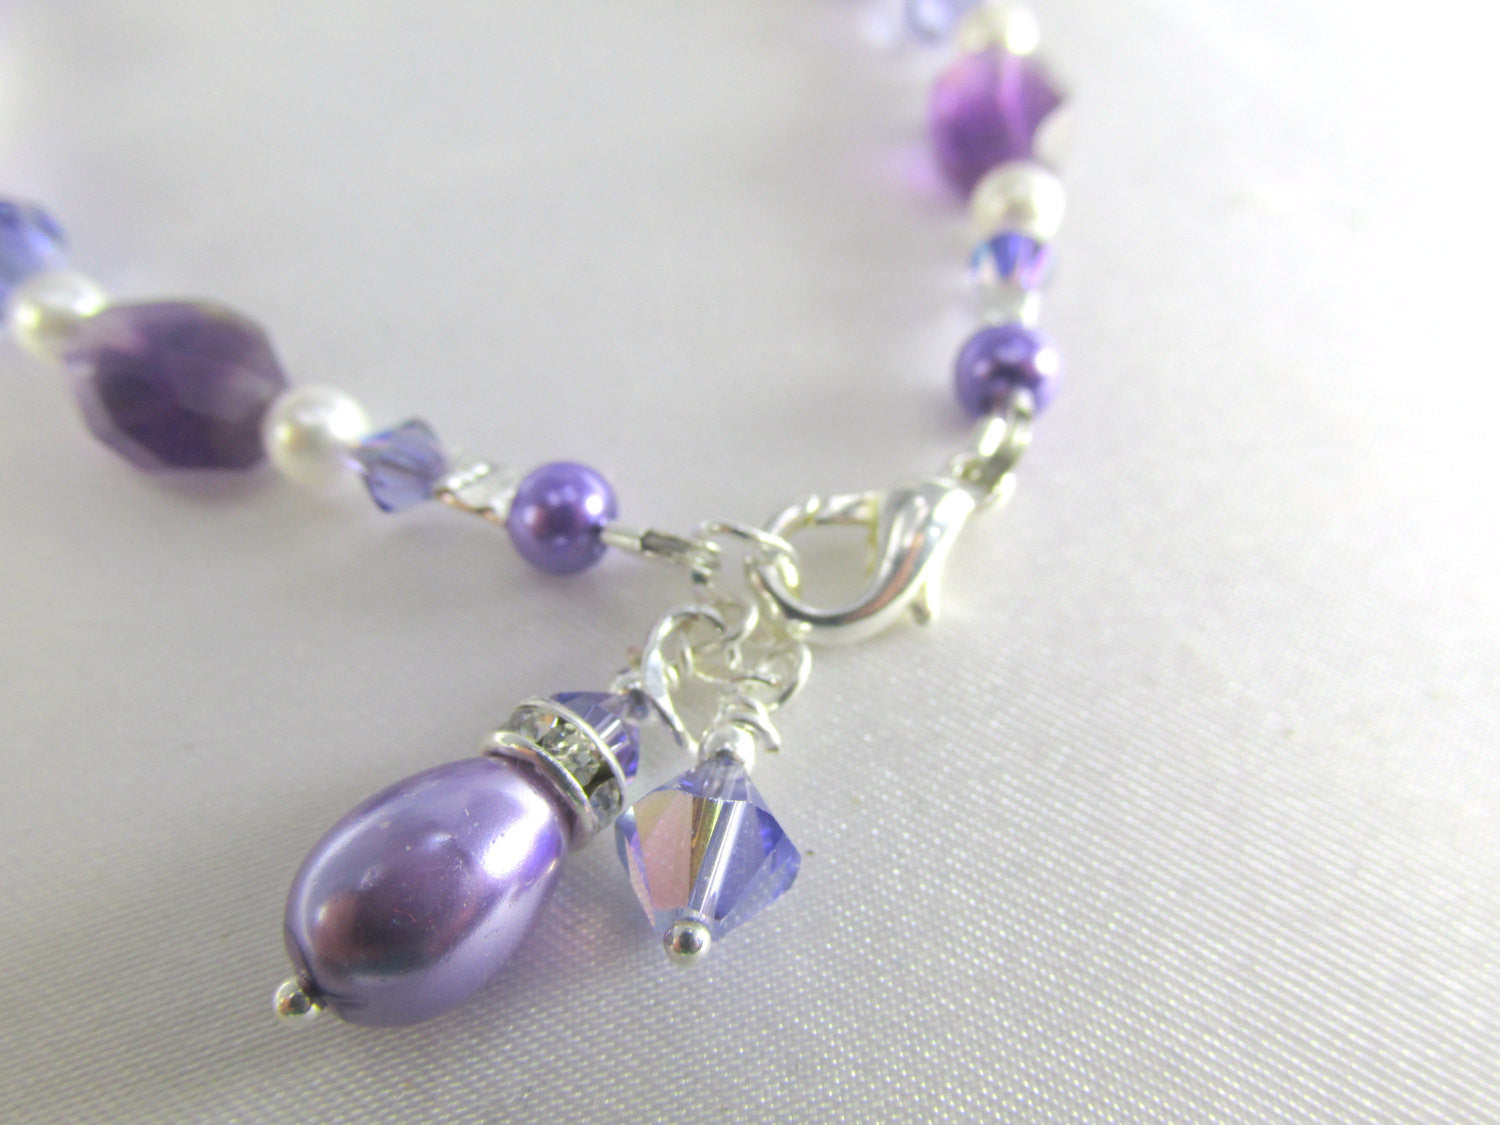 Bracelet in Amethyst, Purple Tanzanite Swarovski, Pearl Teardrops on Silver - Odyssey Creations